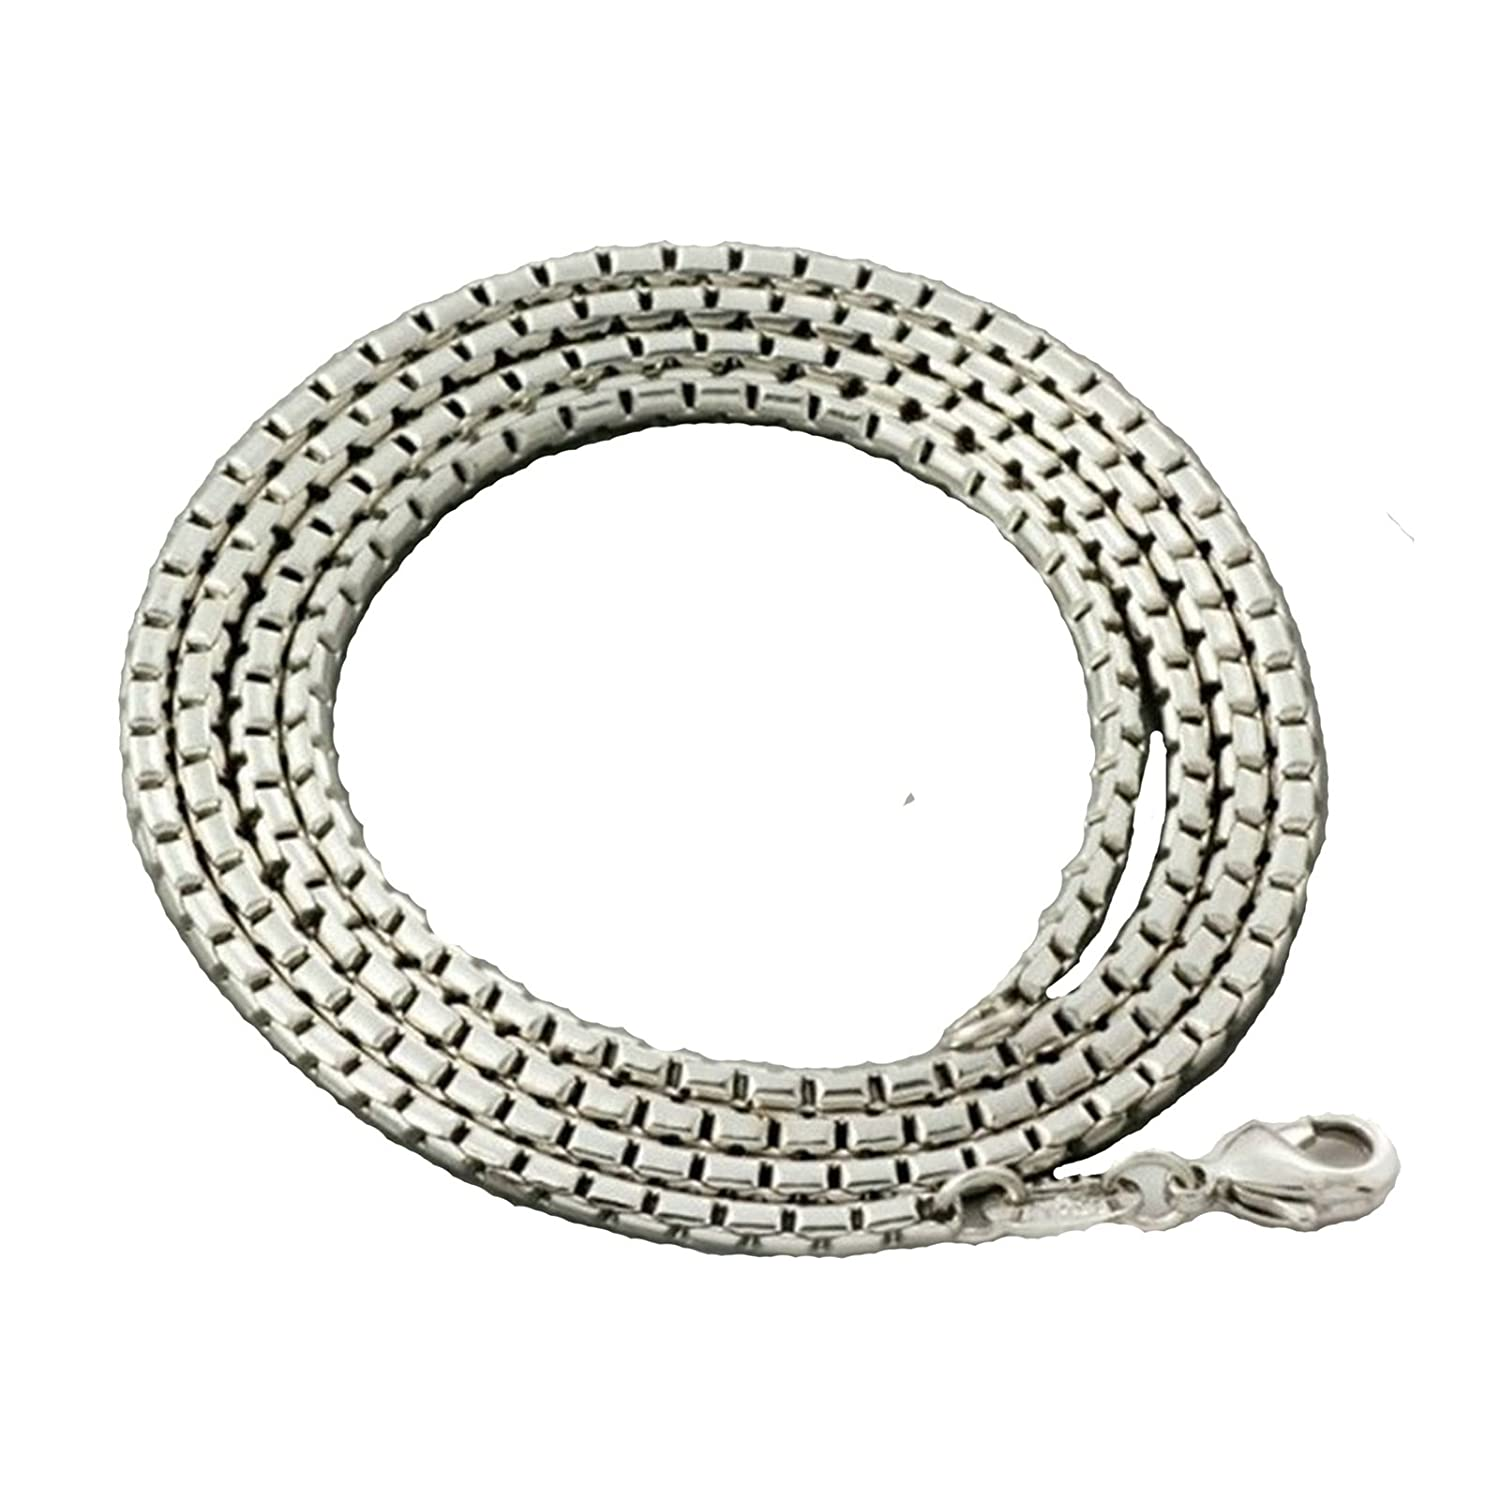 Aokarry Silver Box Chain Necklace 16 Inches